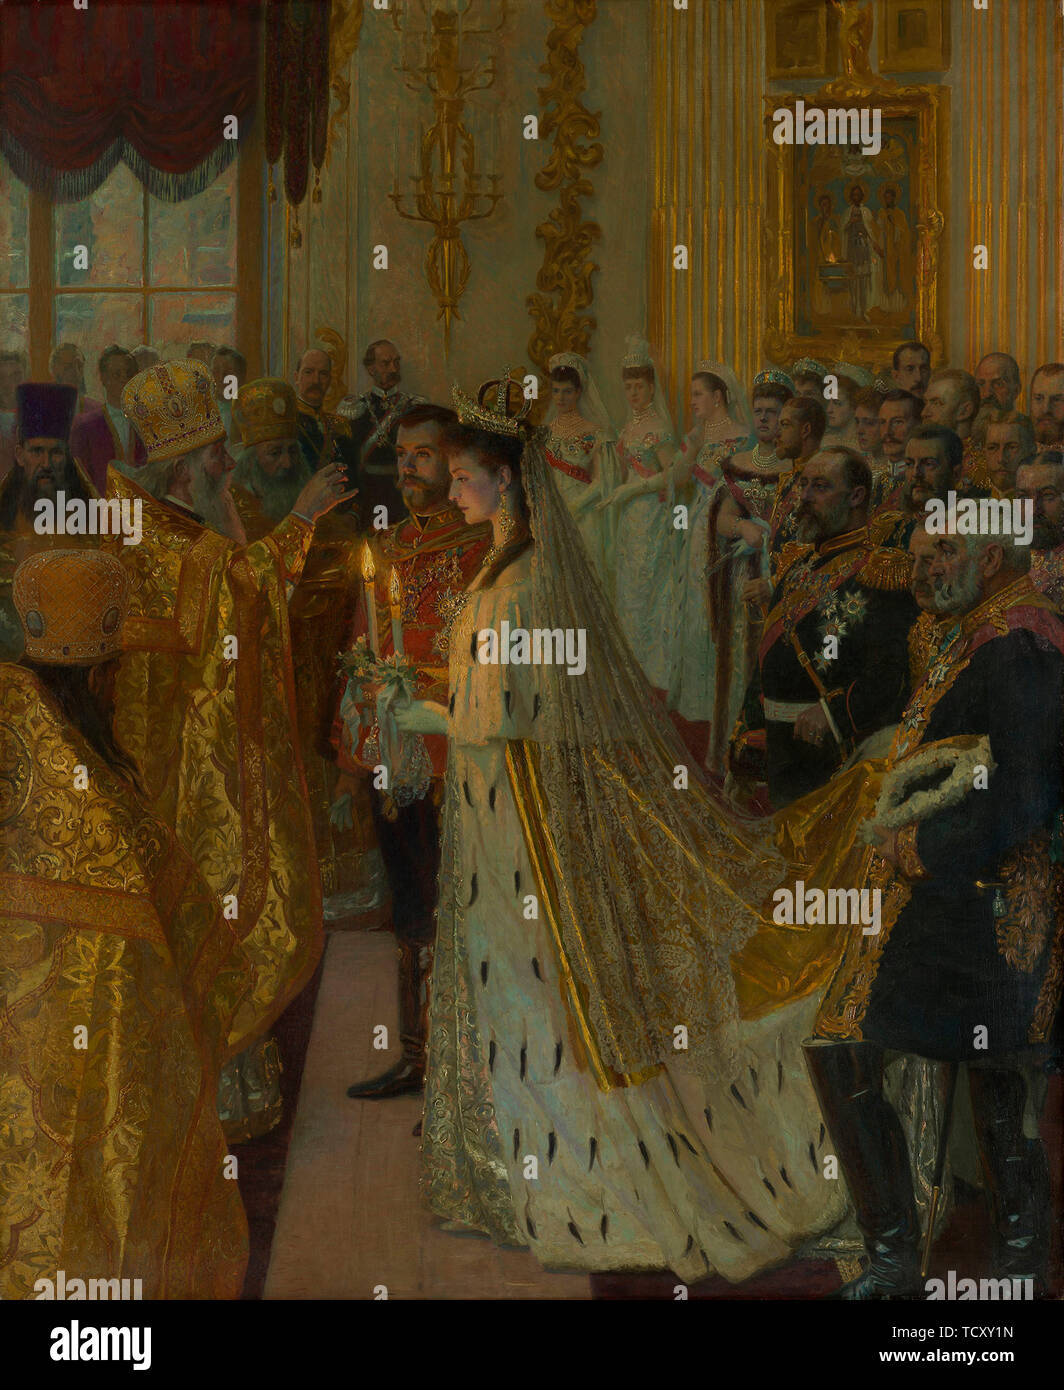 The wedding of Tsar Nicholas II and the Princess Alix of Hesse-Darmstadt on November 26, 1894, 1895- Creator: Tuxen, Laurits Regner (1853-1927). Stock Photo